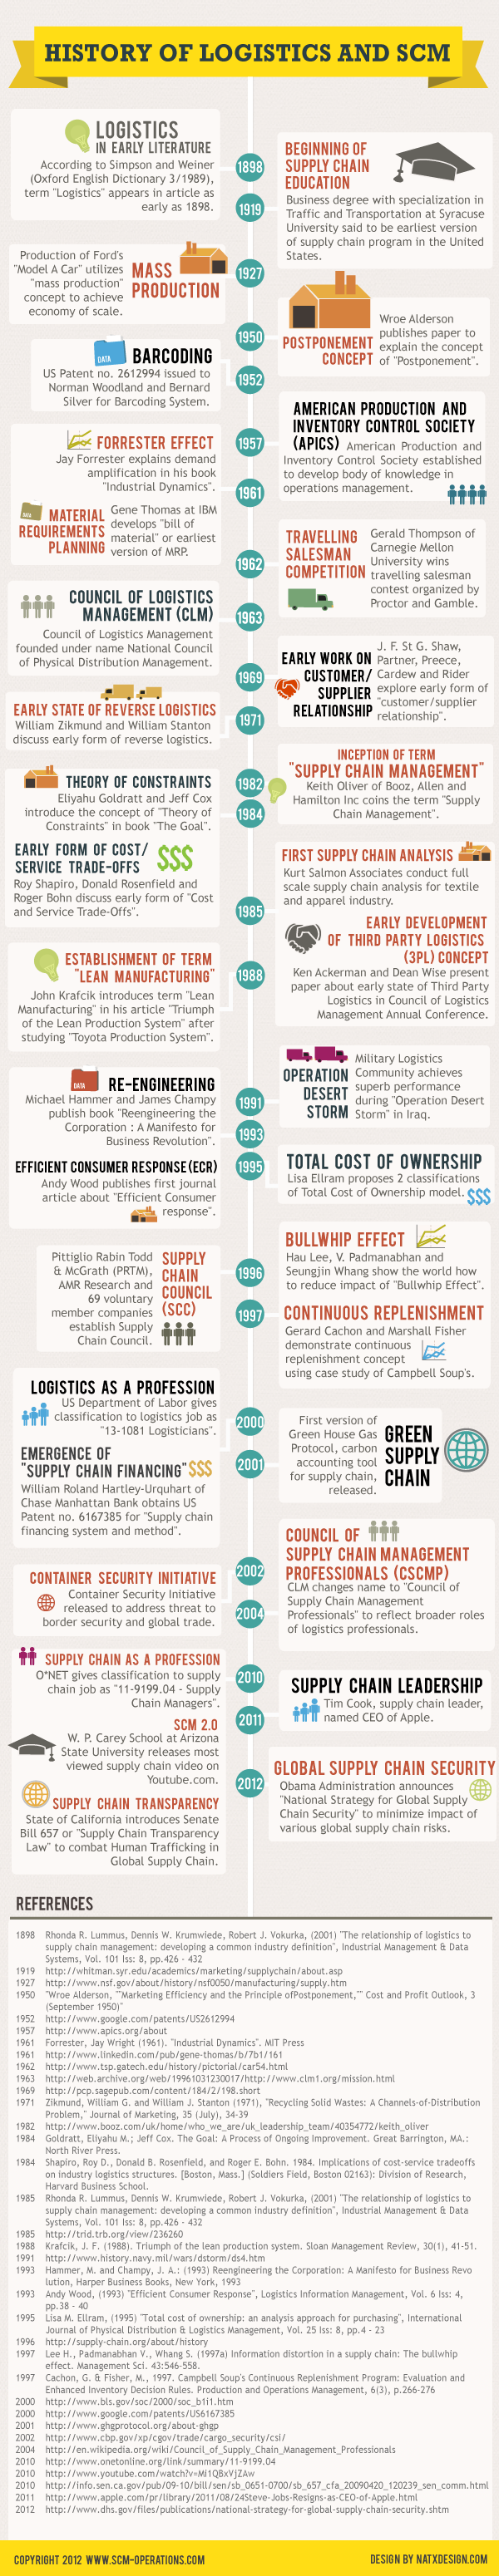 History of Supply Chain Management